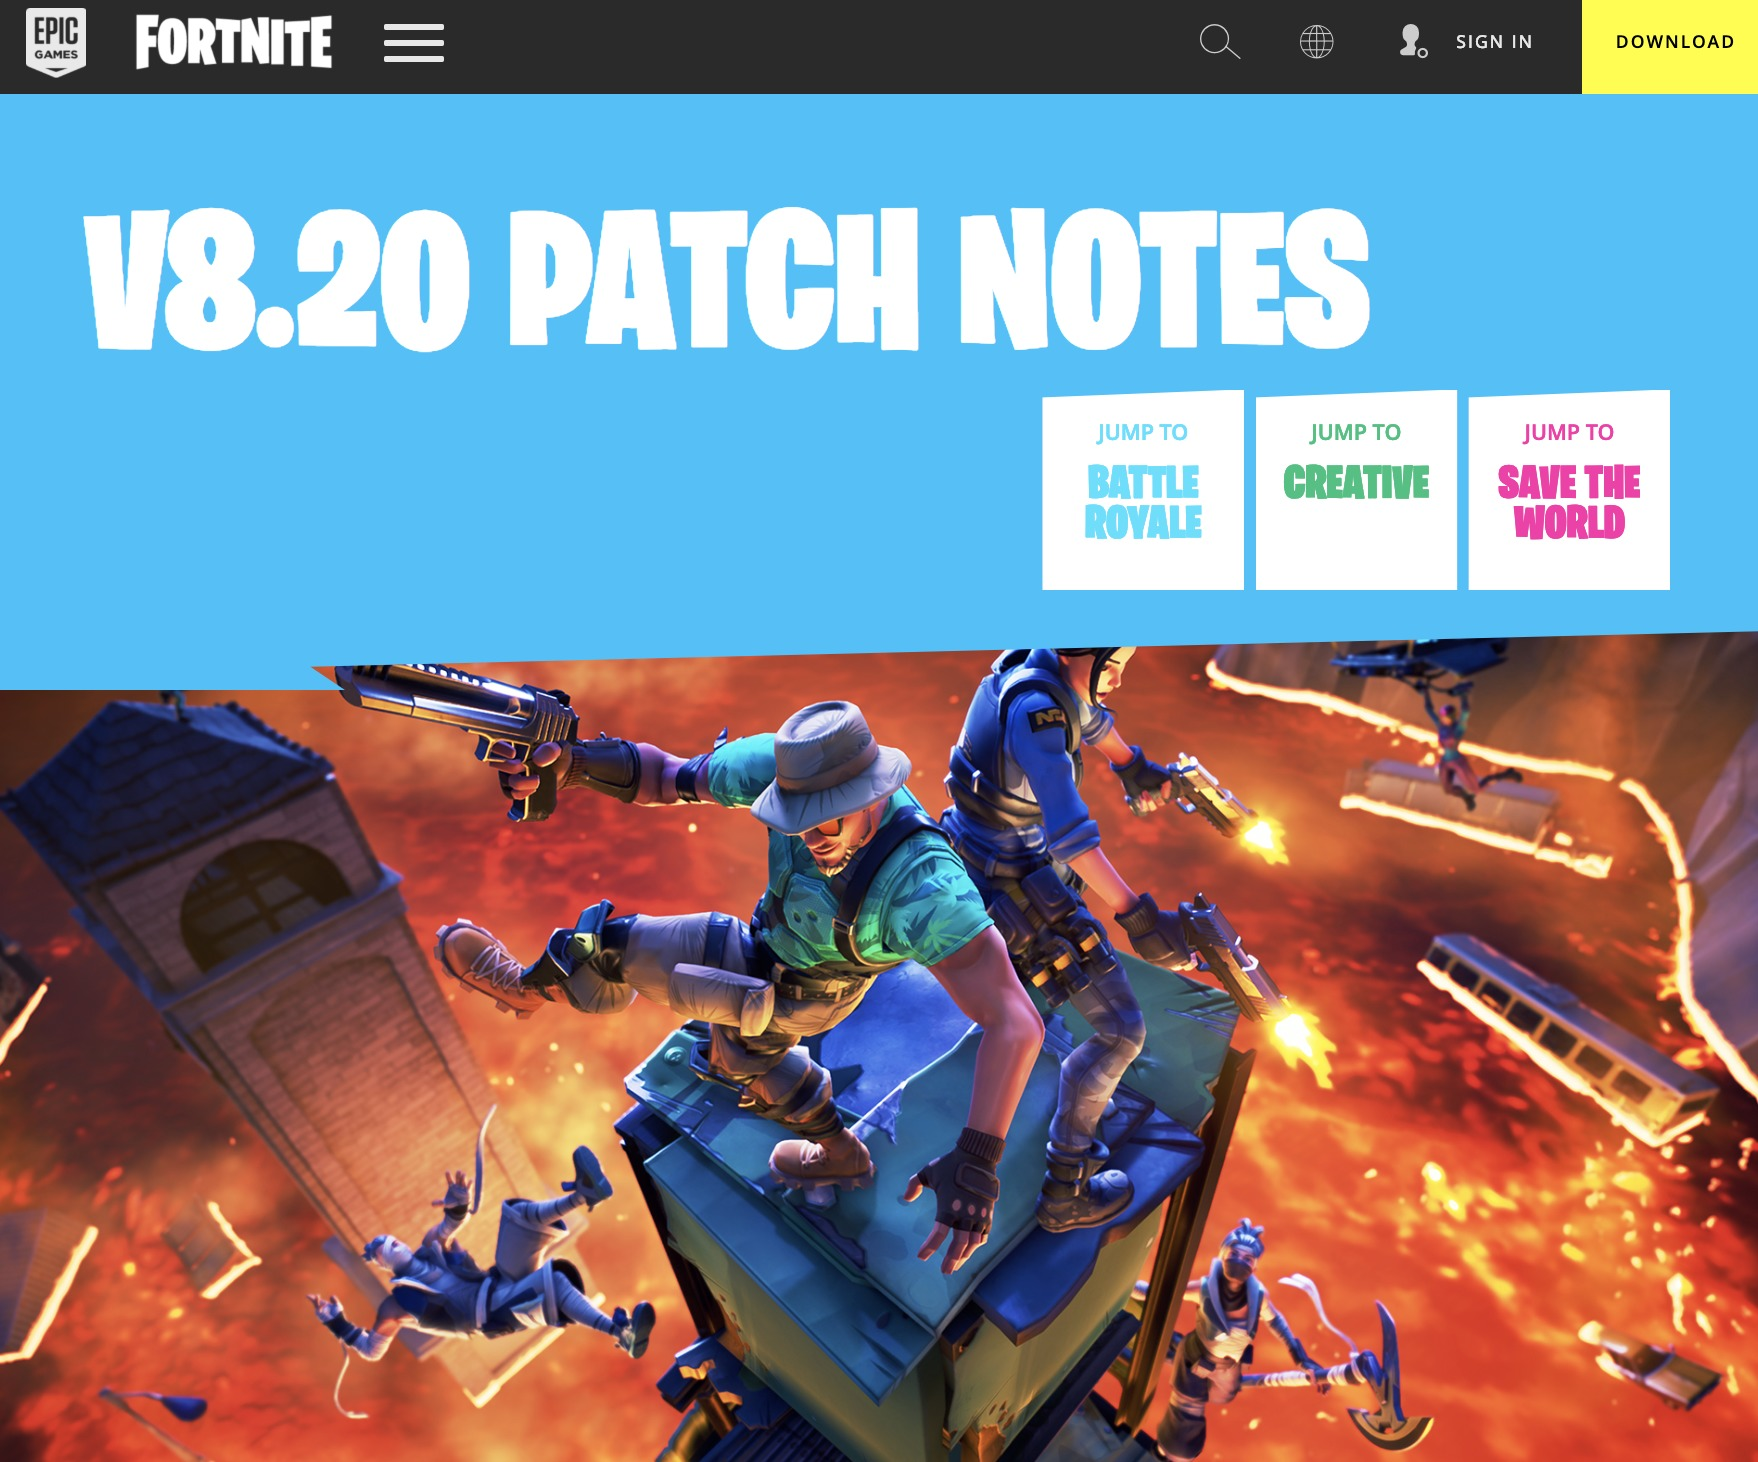 """Epic Games released its patch notes for the 8.20 patch, which will add a new limited time mode called """"The Floor is Lava."""""""